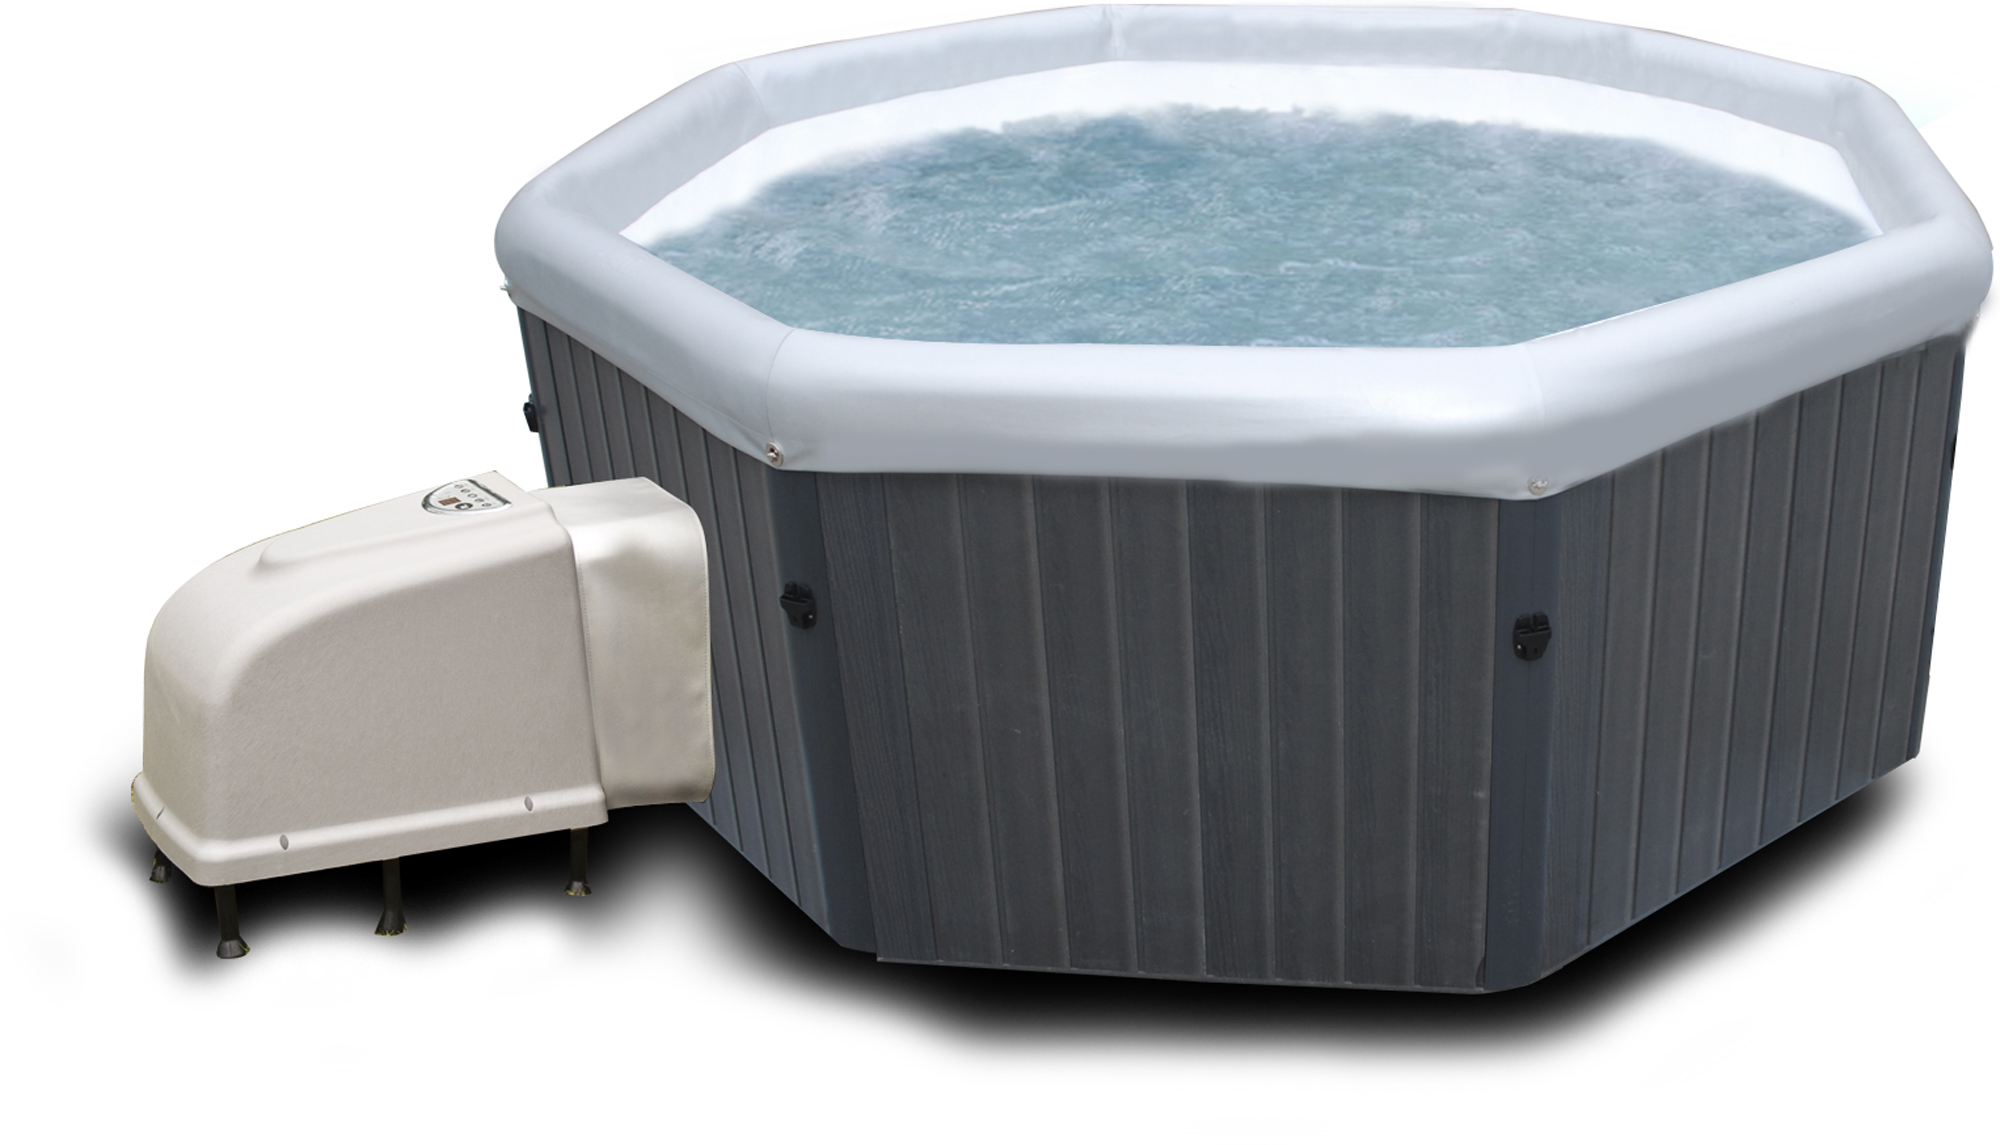 Poolstar spa portable tuscany jet 6 places for Piscine transportable